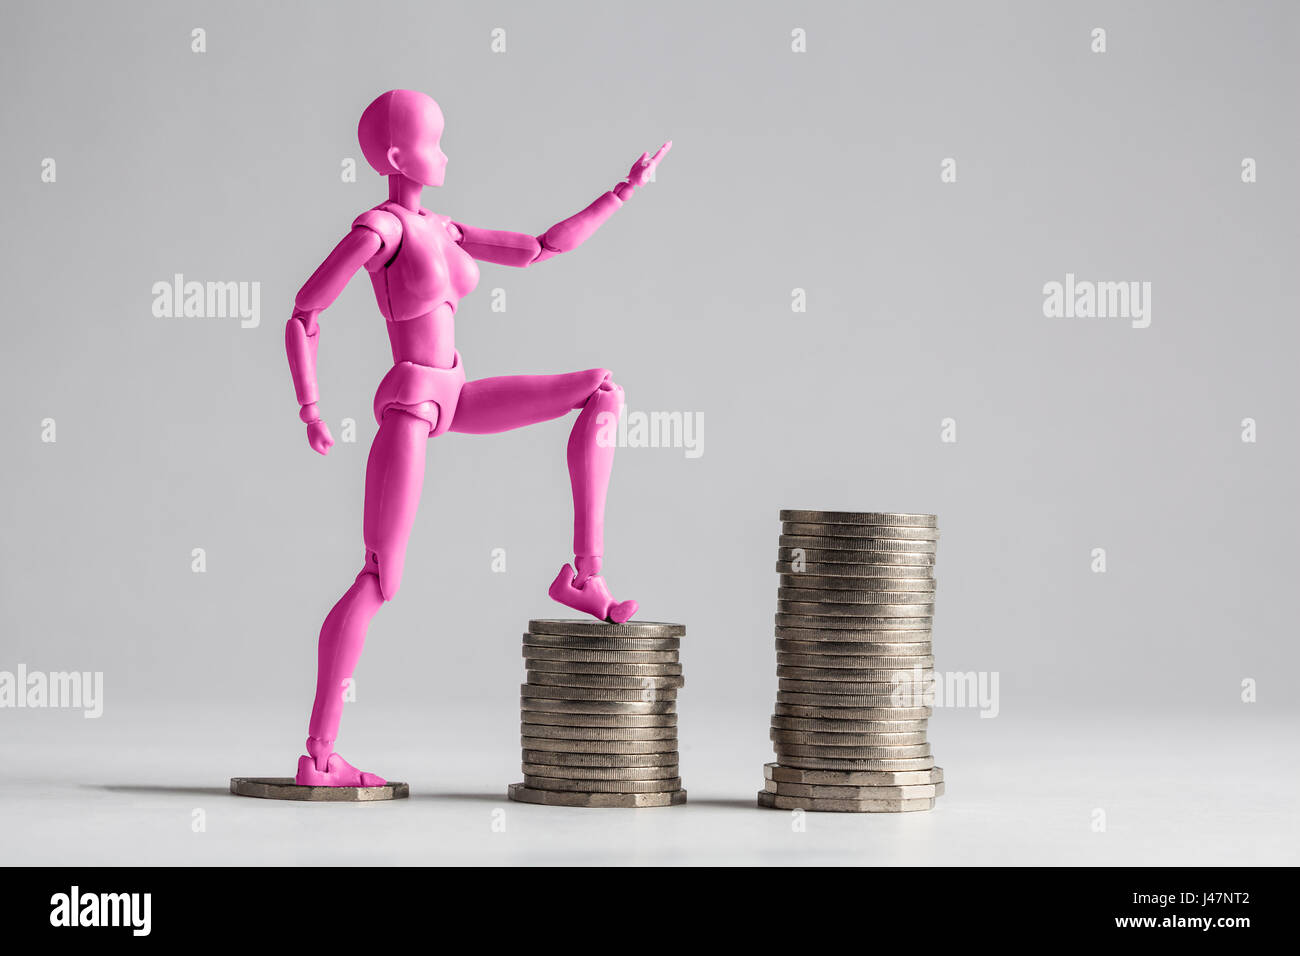 Empowered women stepping up the income ladder concept. Pink female figurine clilmbing up on piles of coins. Isolated Stock Photo